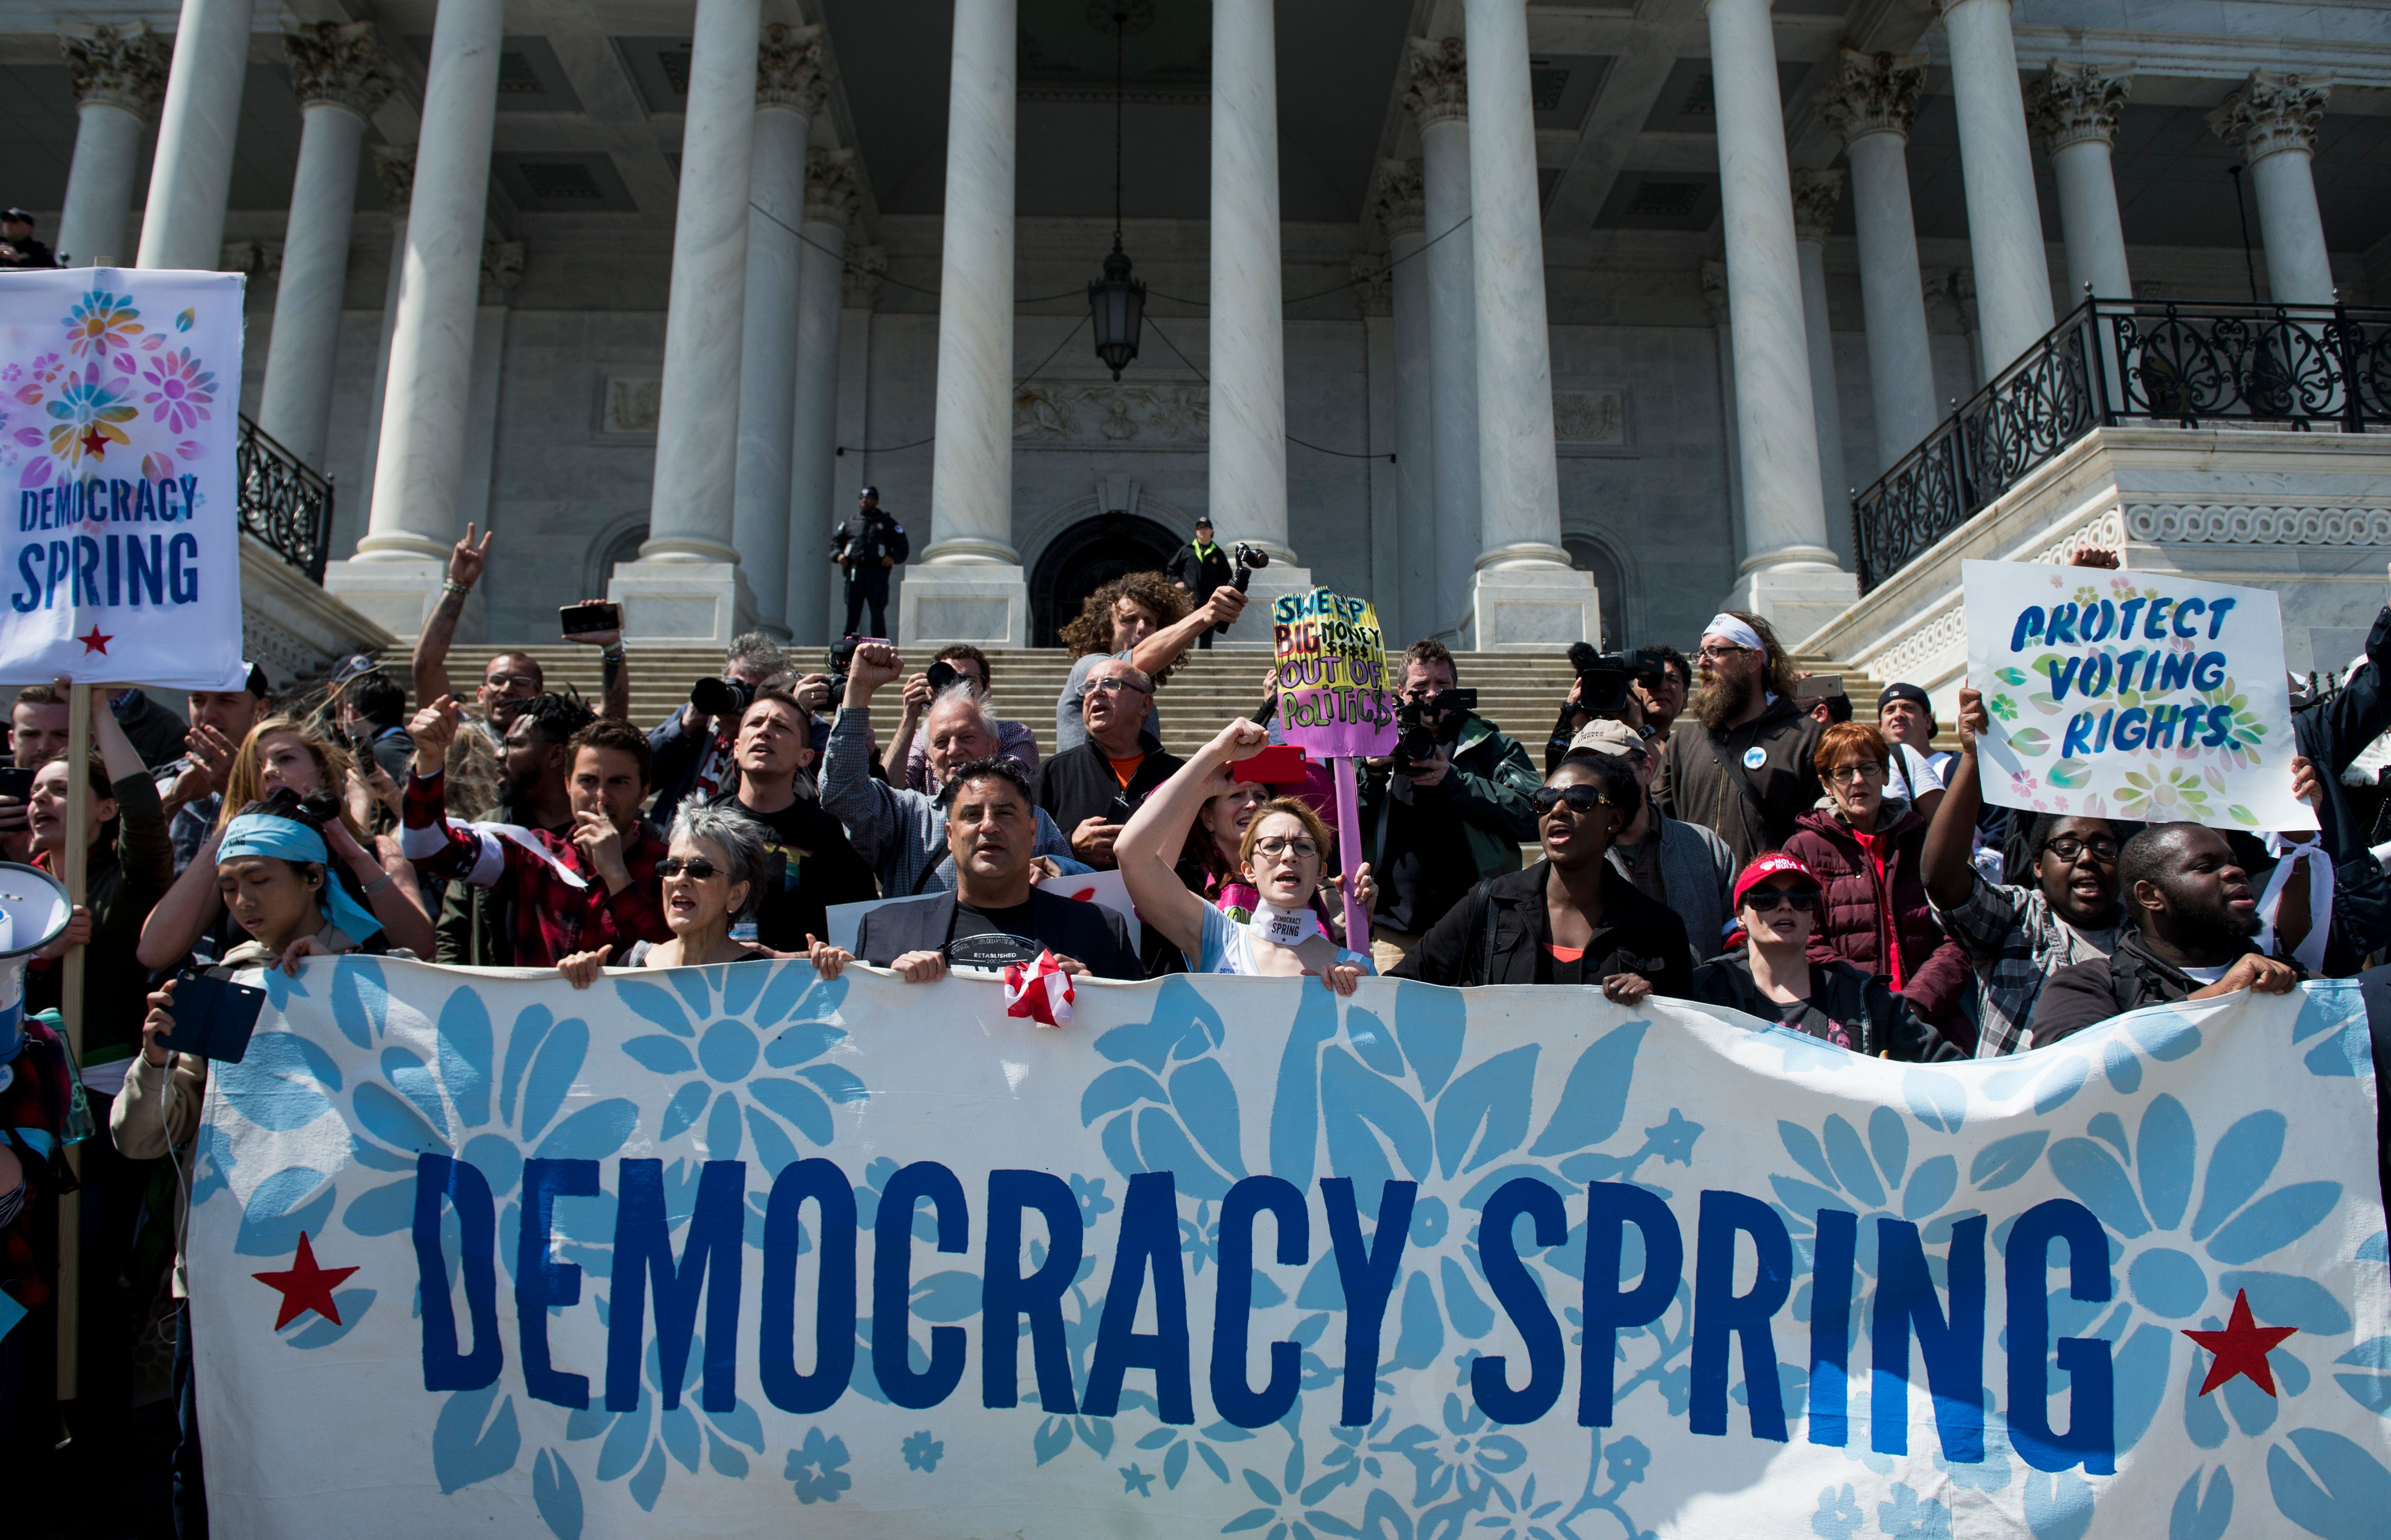 UNITED STATES - APRIL 11: Democracy Spring protesters calling for the end of big money in politics stage a sit-in on the Capitol steps and on the East Plaza of the Capitol on Monday April 11, 2016.  (Photo By Bill Clark/CQ Roll Call)